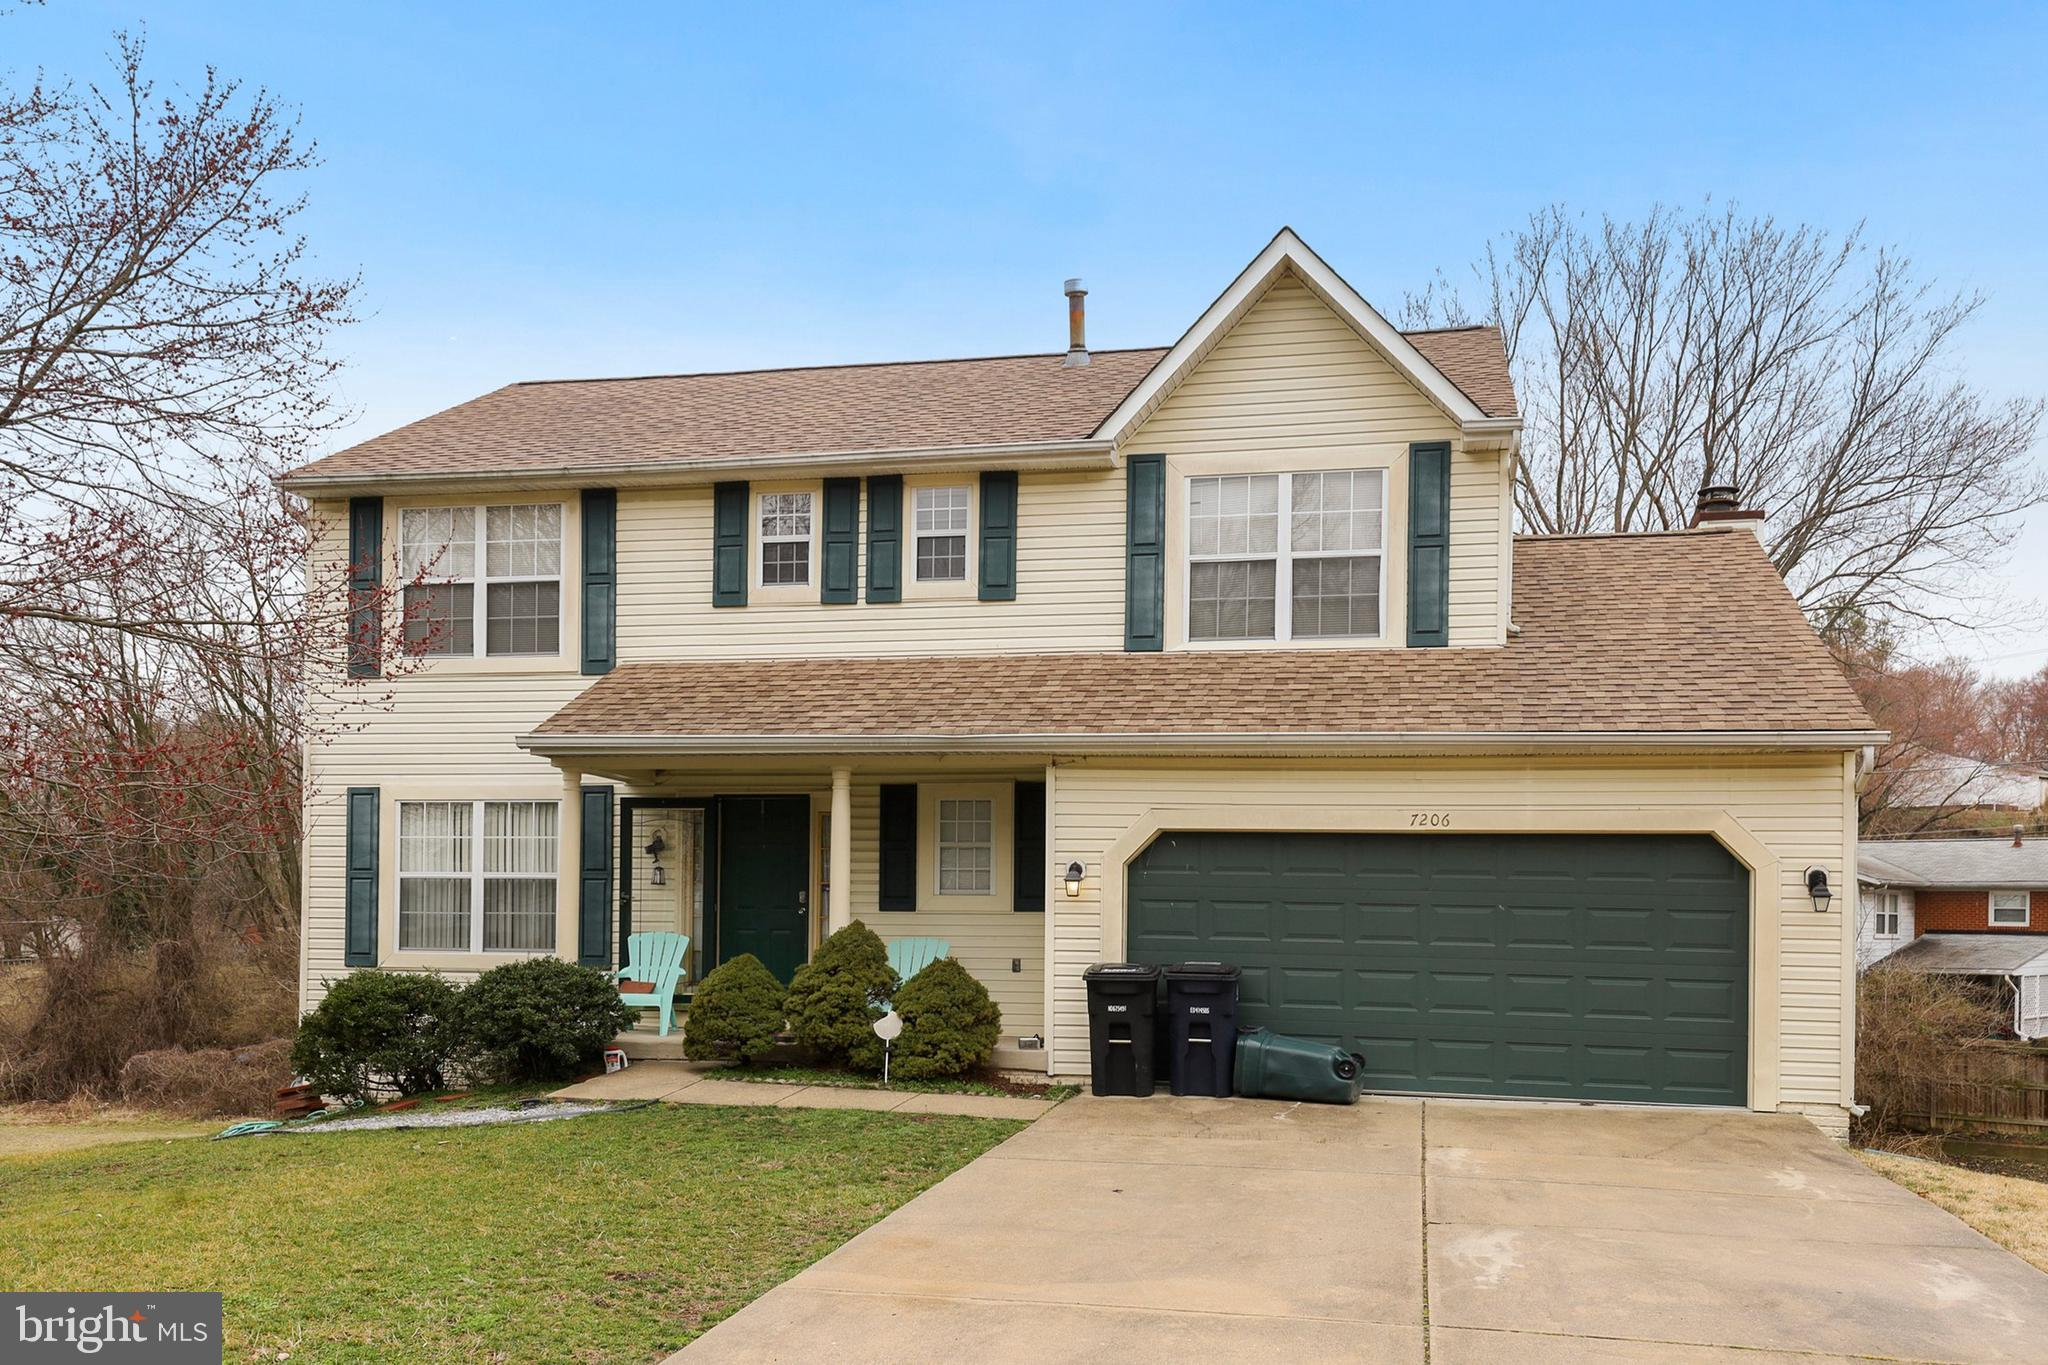 7206 WILLOW HILL DRIVE, CAPITOL HEIGHTS, MD 20743